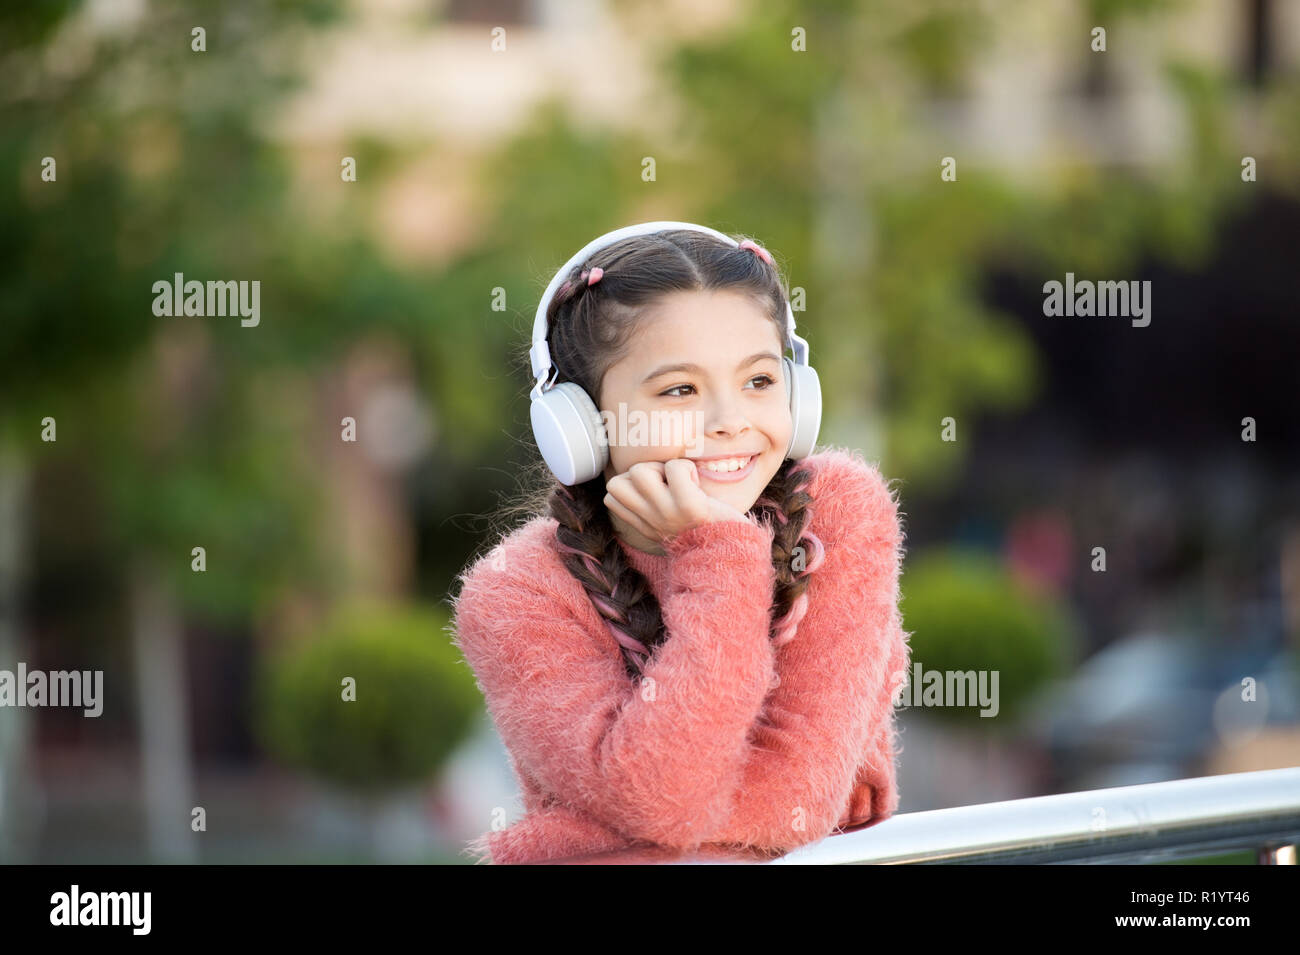 Funny cool stylish girl is listening to music and thinking about positiveness. Girl standing on the bridge with headphones. Tranquil influence of music. Nice girl in pink sweater enjoying song. - Stock Image